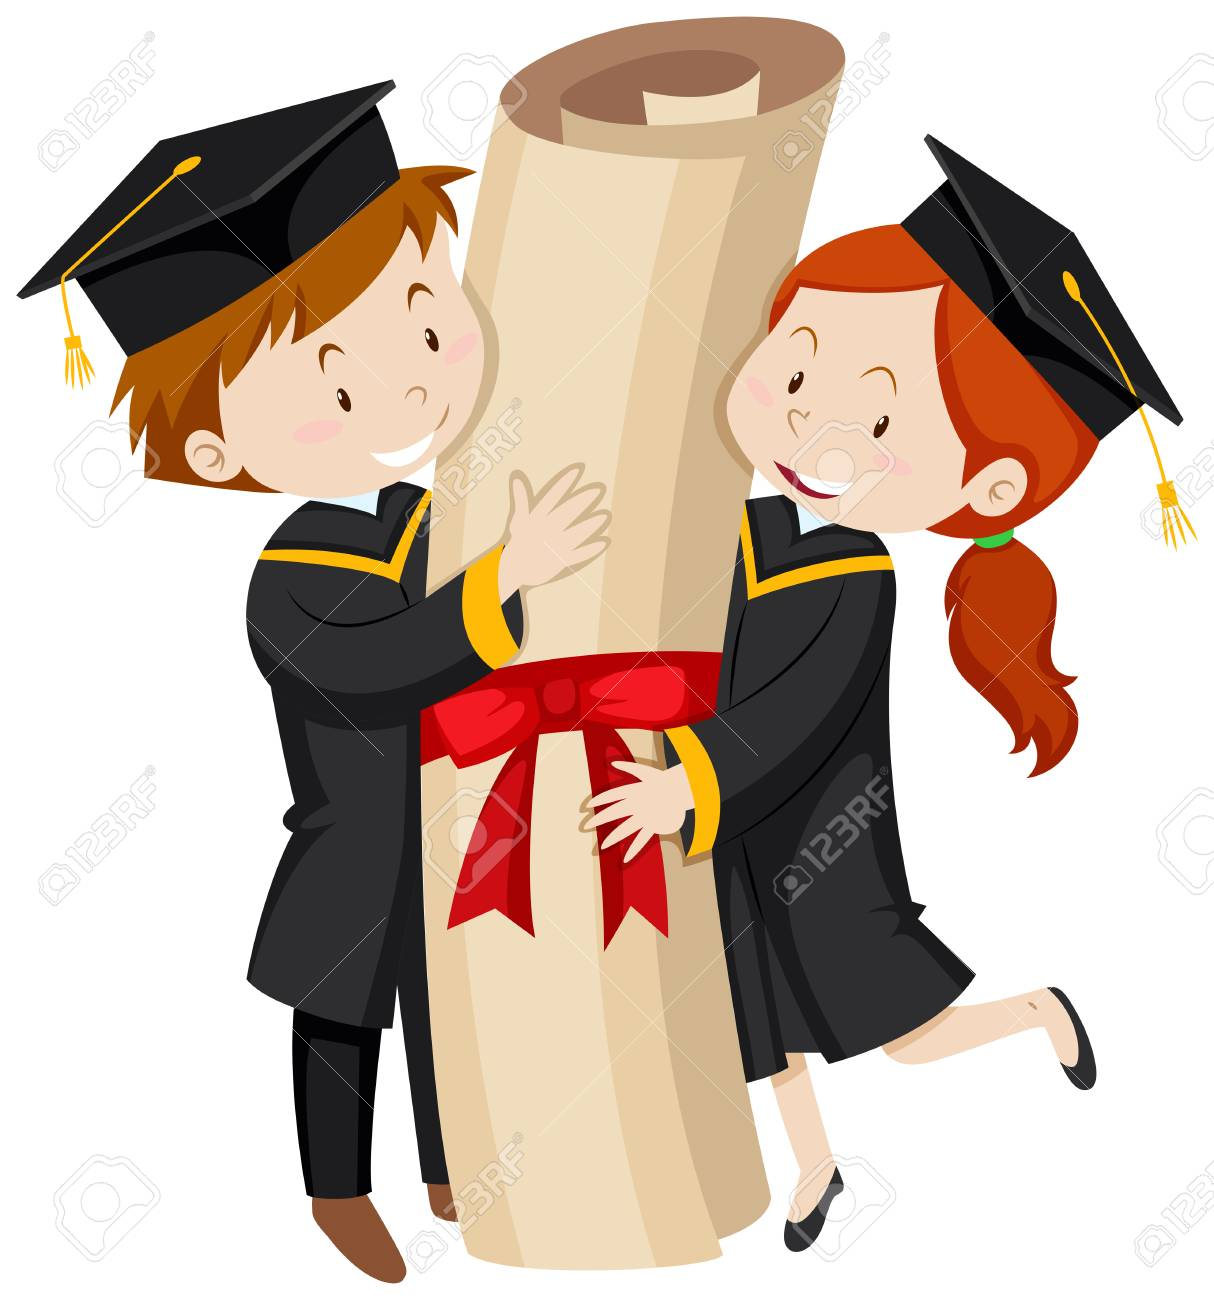 Man And Woman In Graduation Gown Illustration Royalty Free Cliparts ...